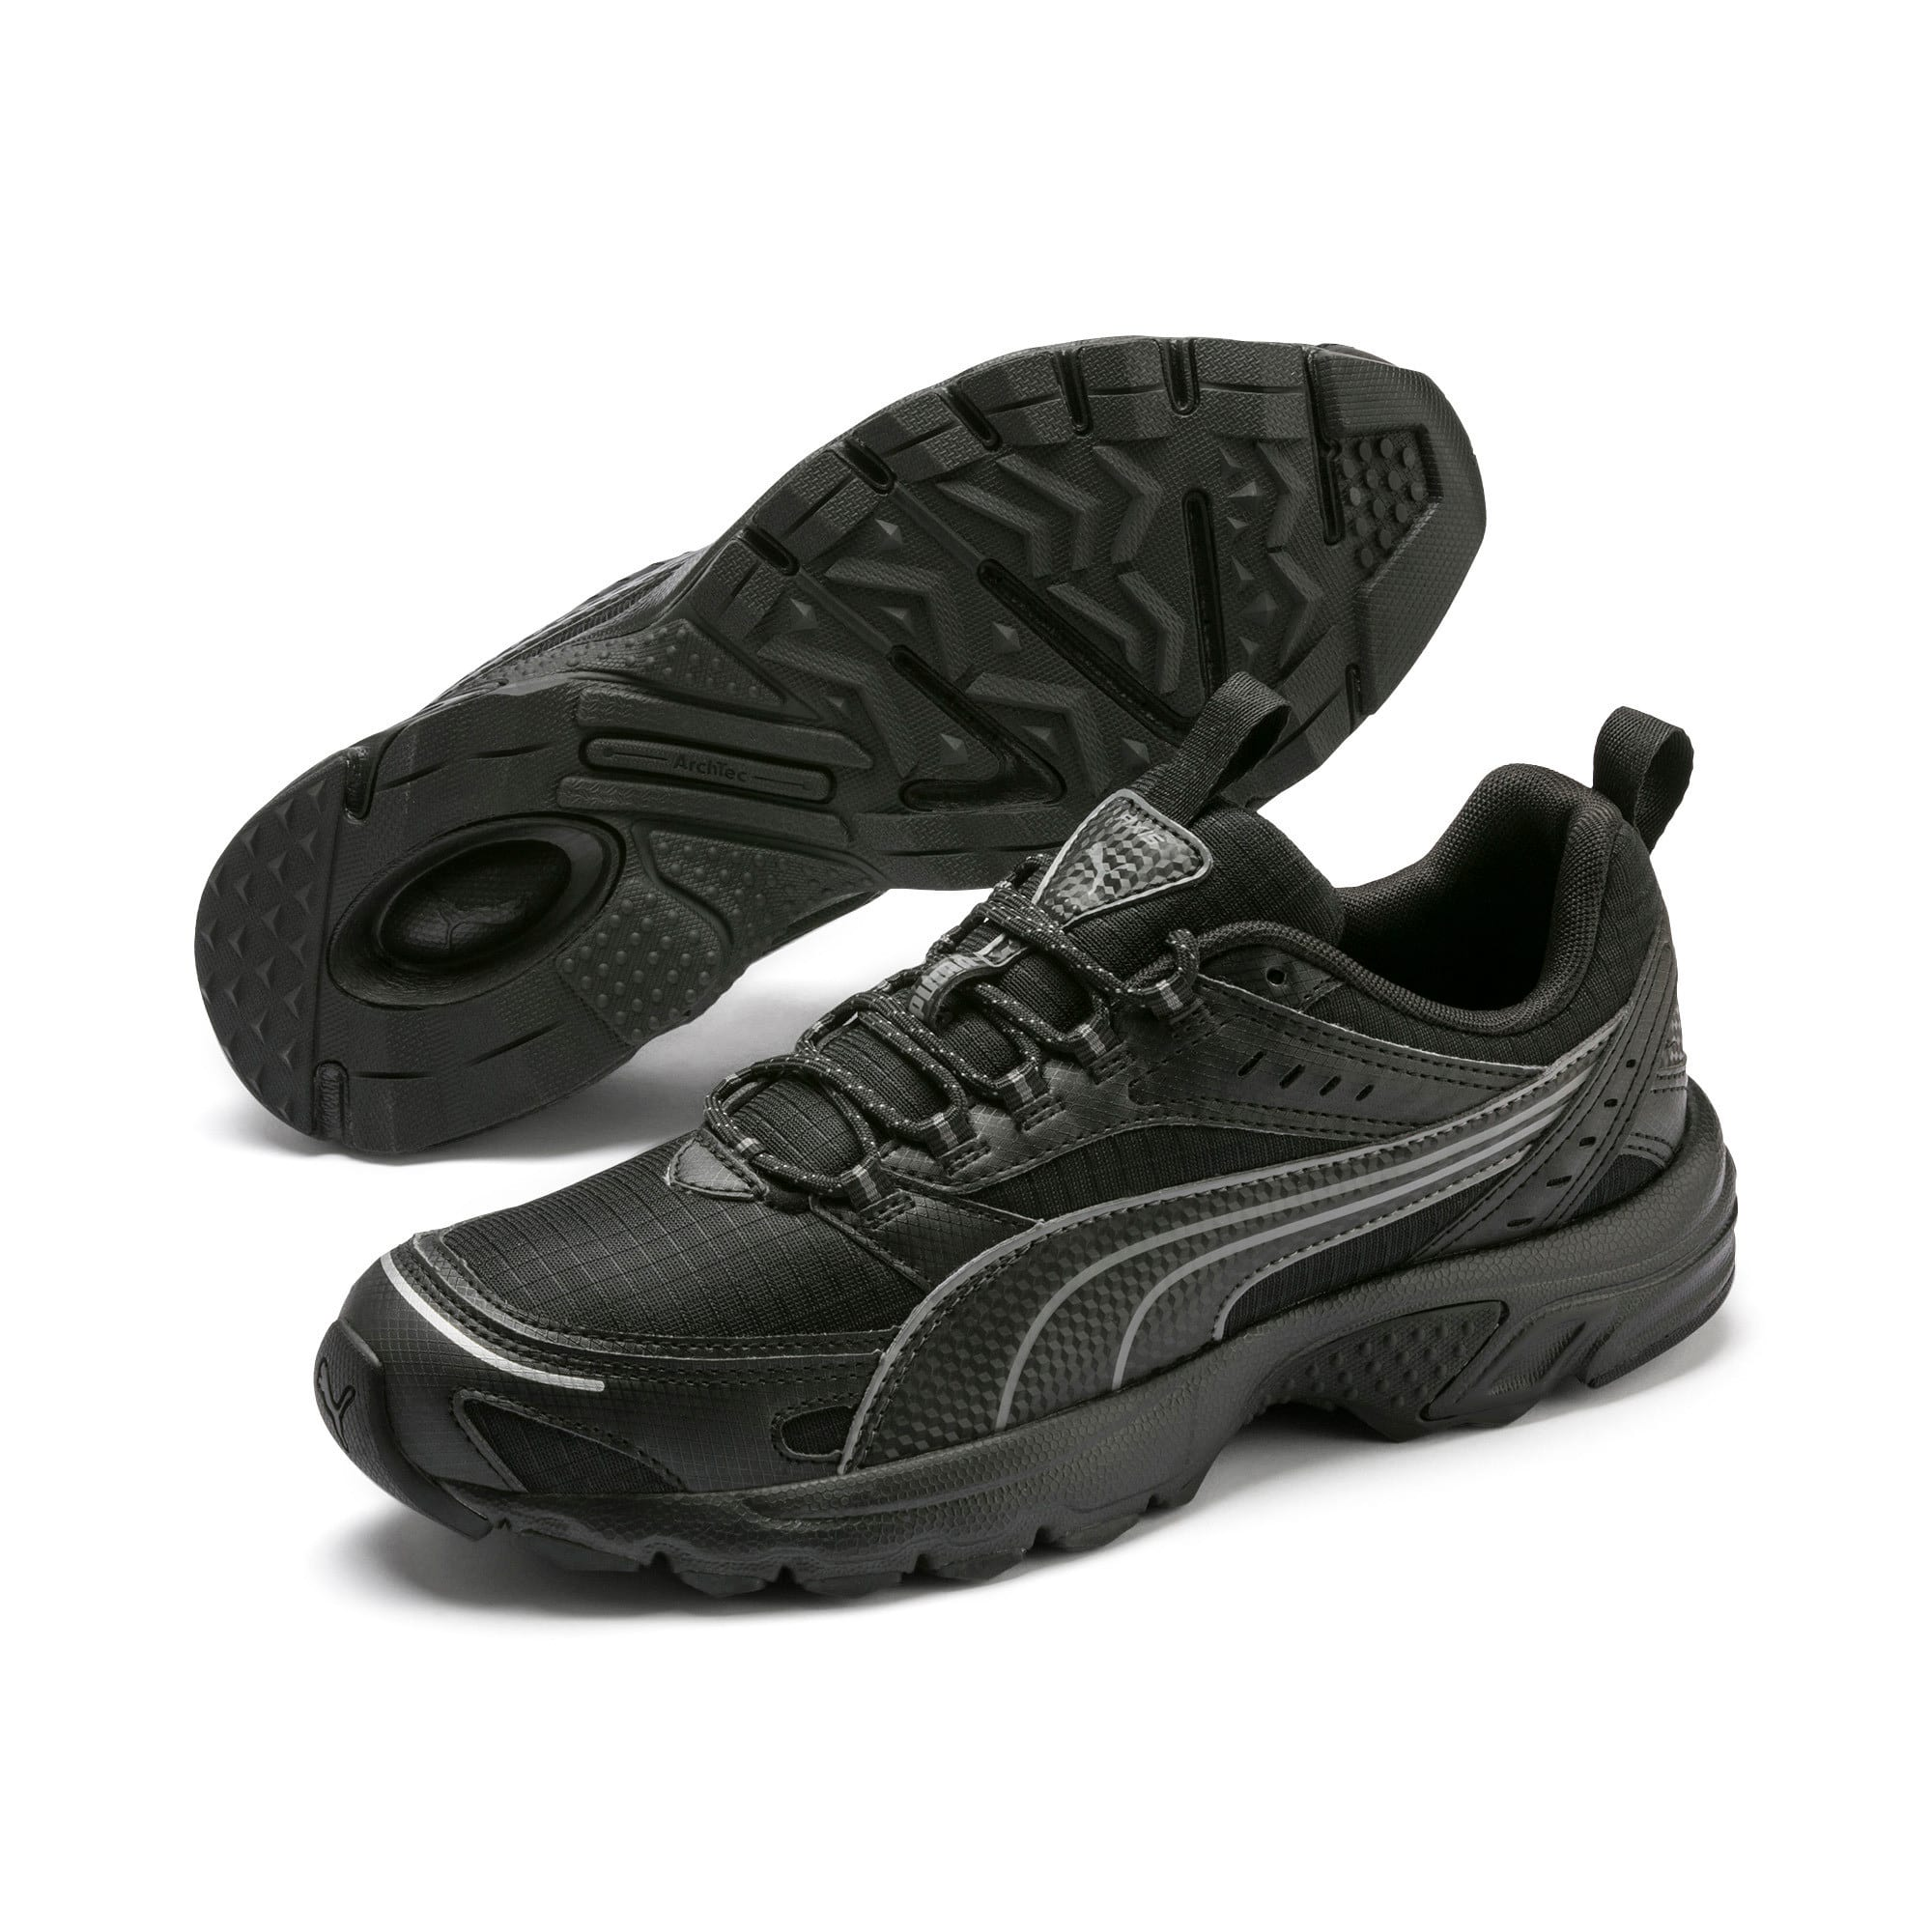 Axis trainingssneakers, Puma Black-CASTLEROCK-Silver, large